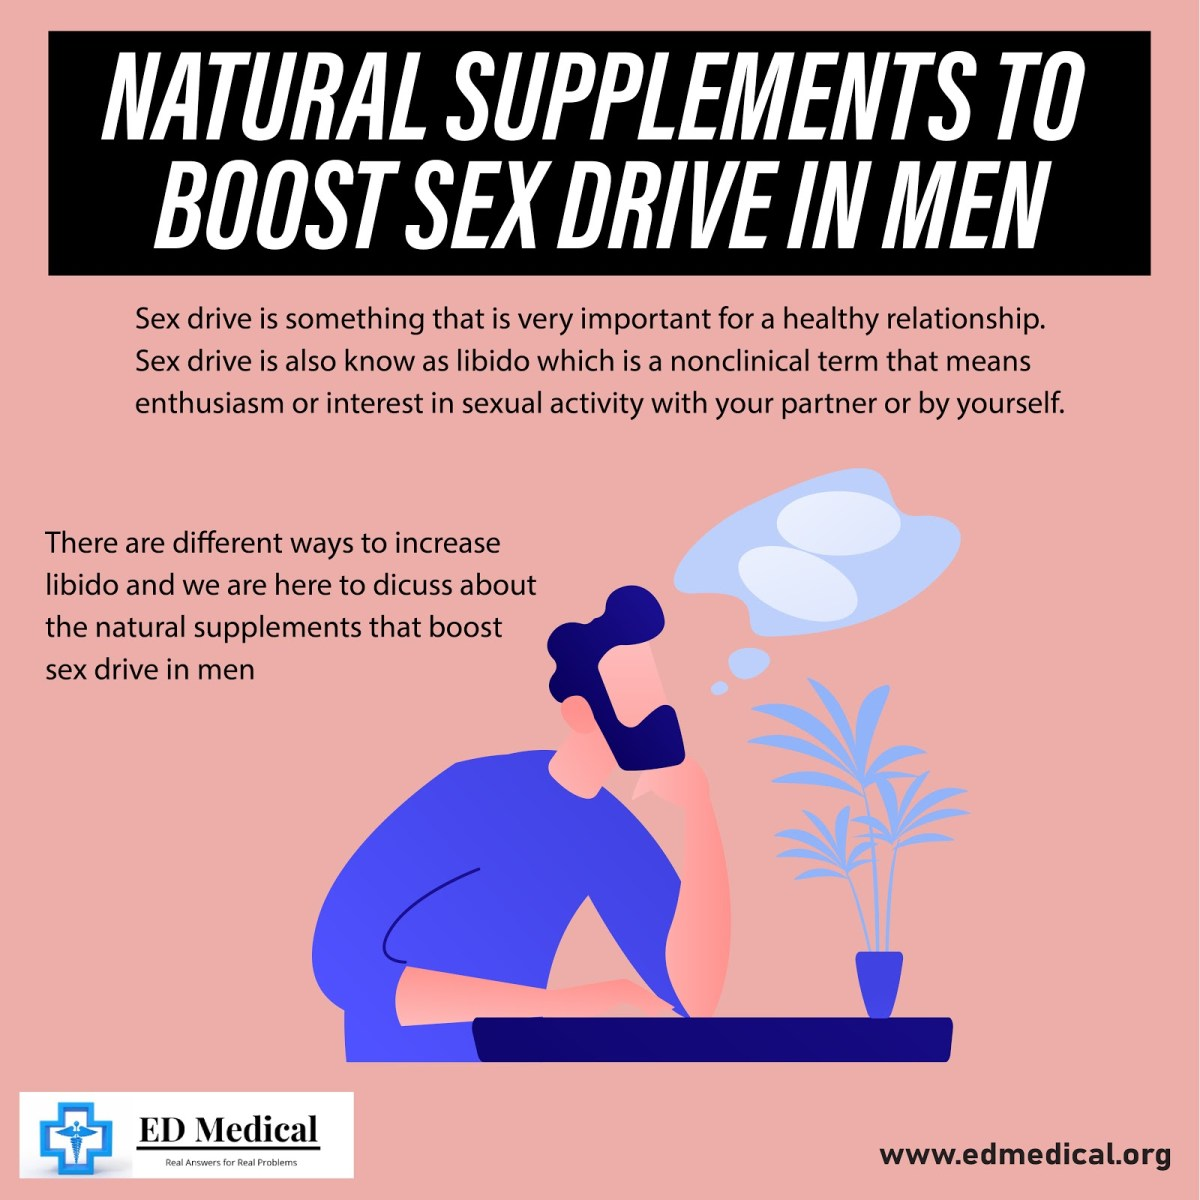 Natural Supplements to boost sex drive in men